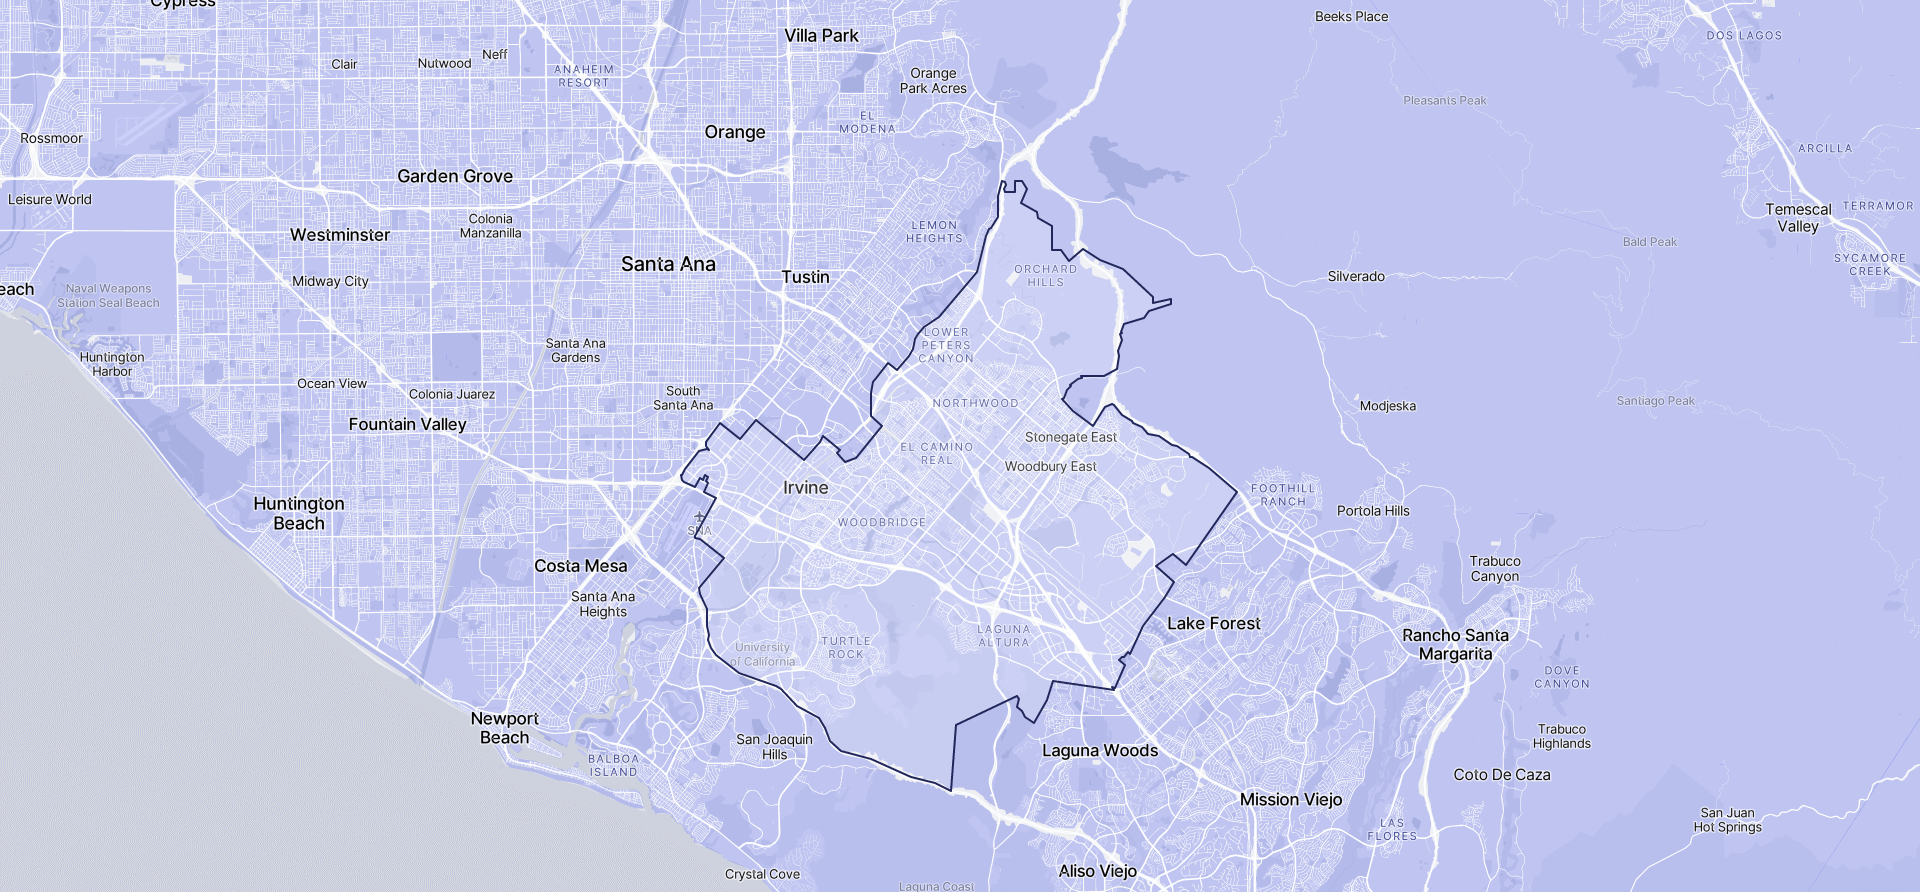 Image of Irvine boundaries on a map.